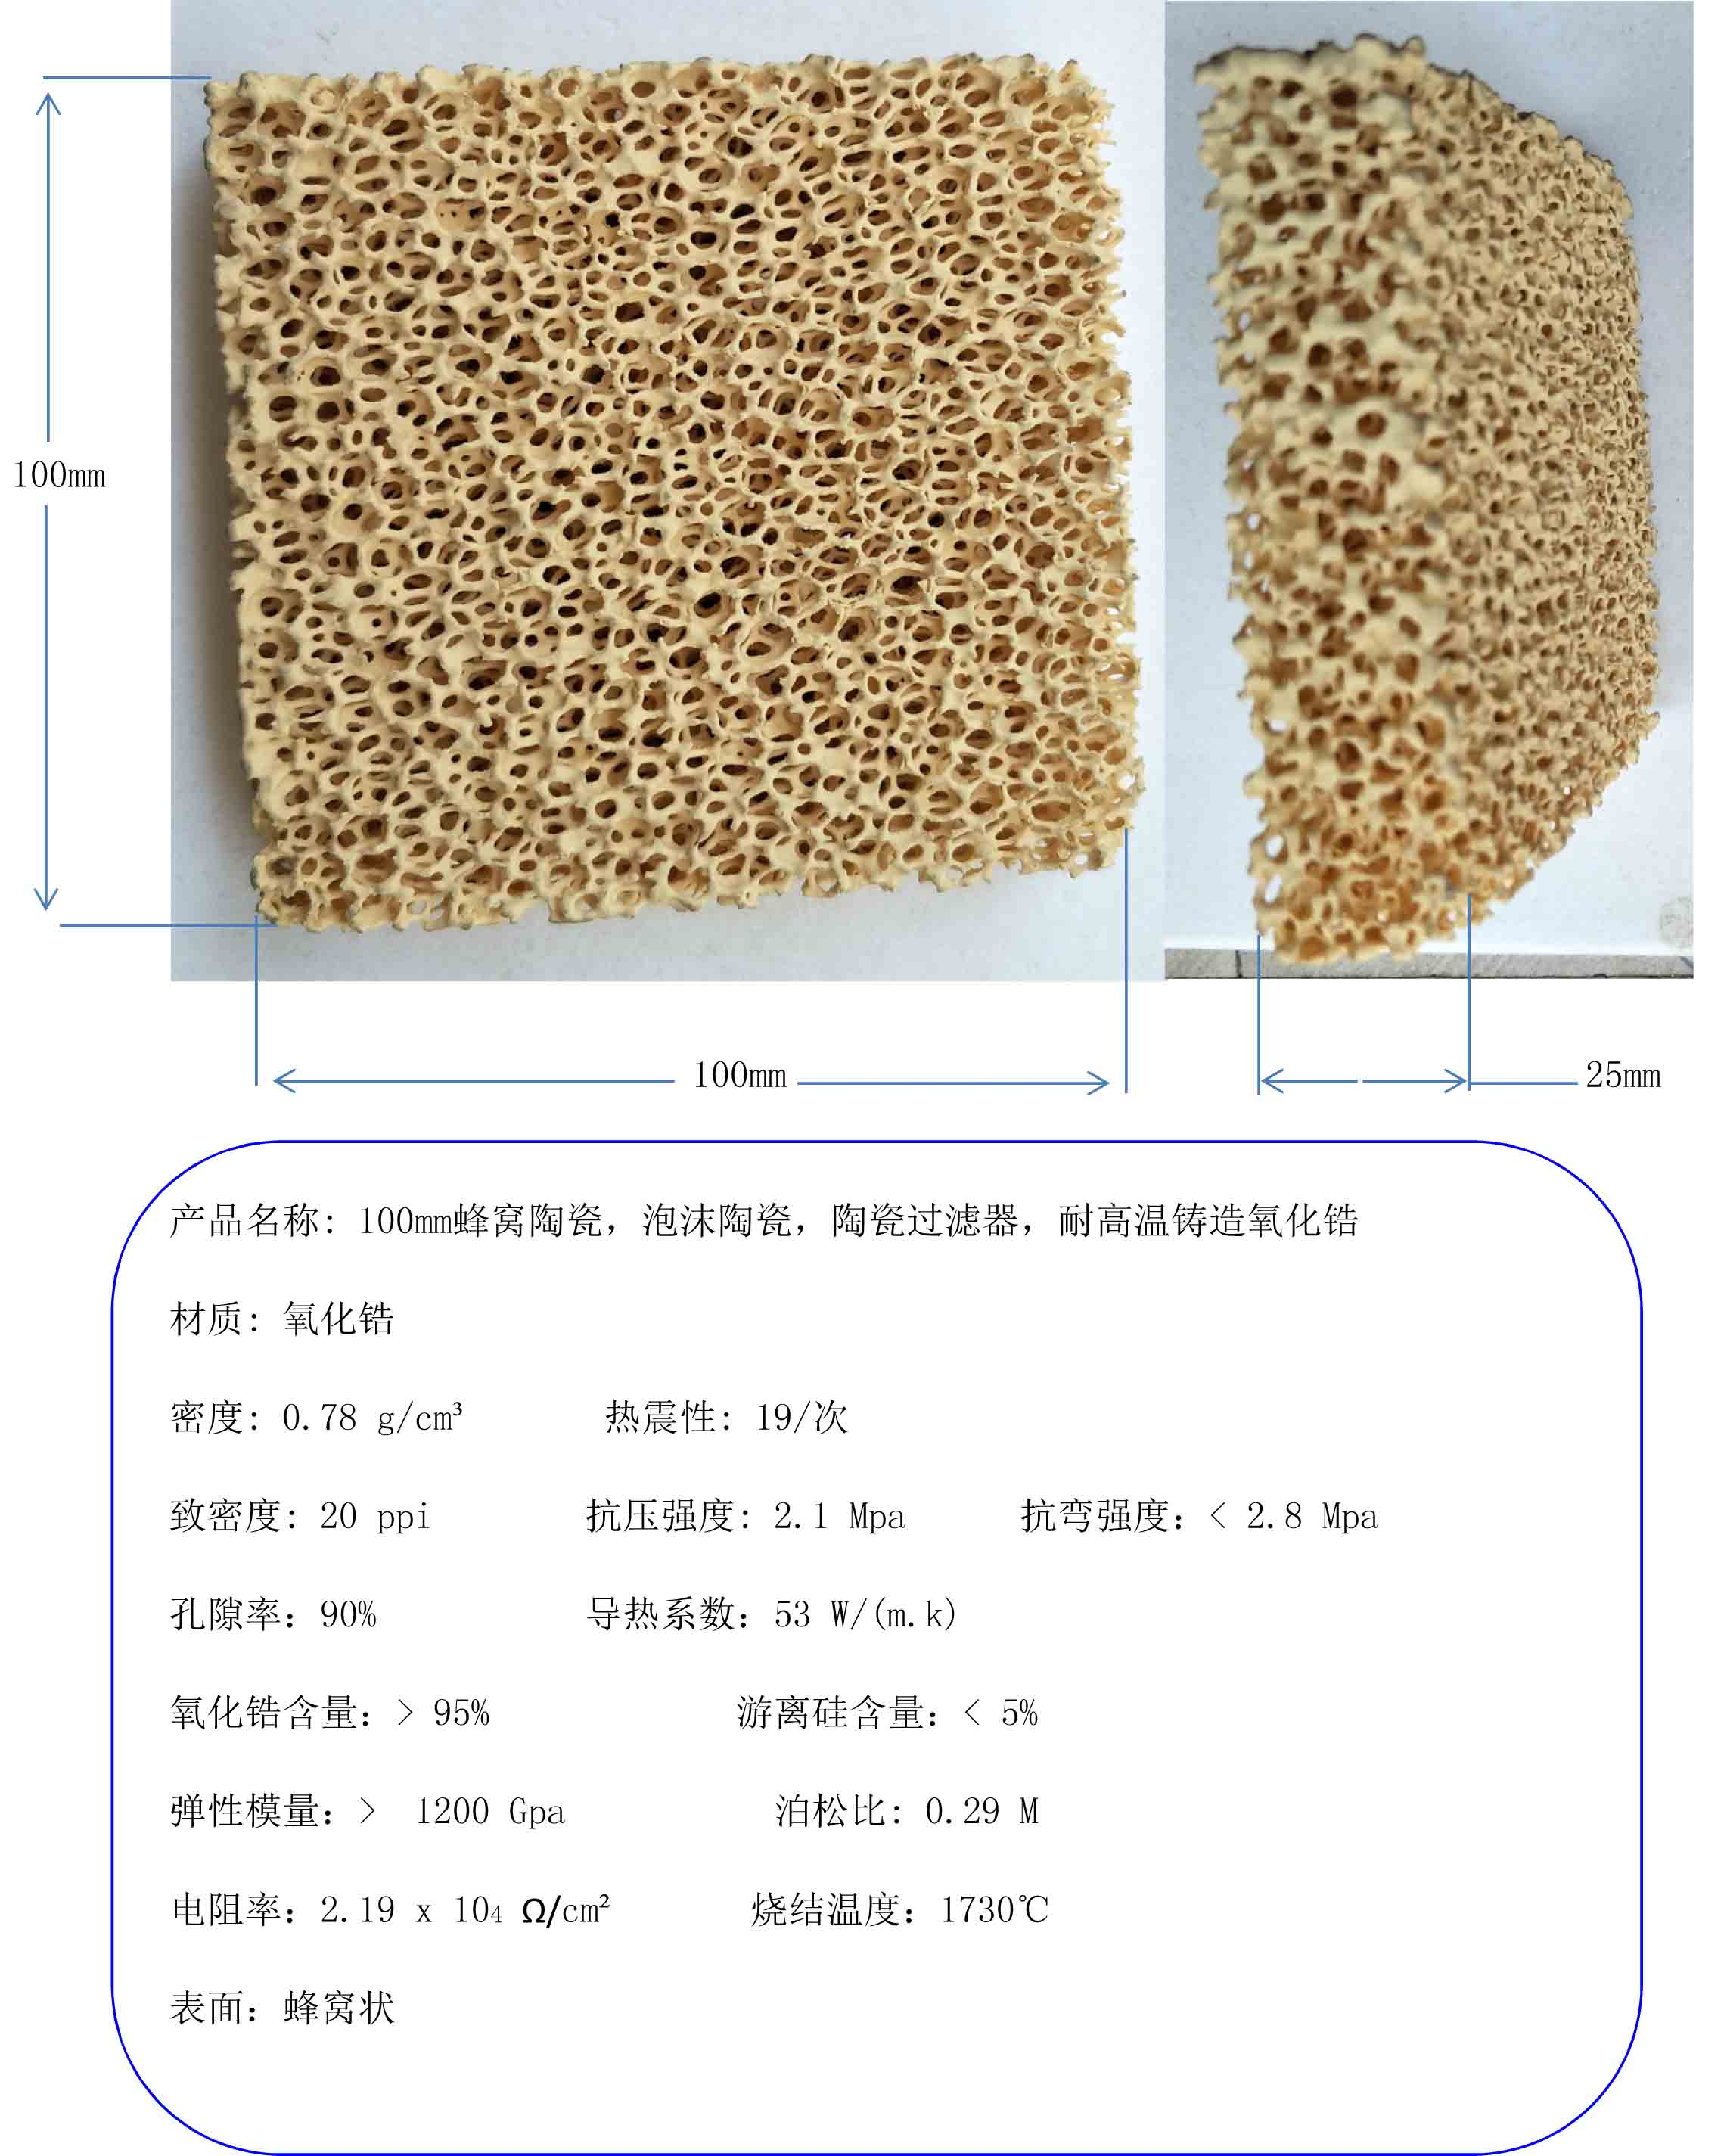 100mm Honeycomb Ceramic, Foam Ceramic, Ceramic Filter, High Temperature Resistant Zirconia ceramic